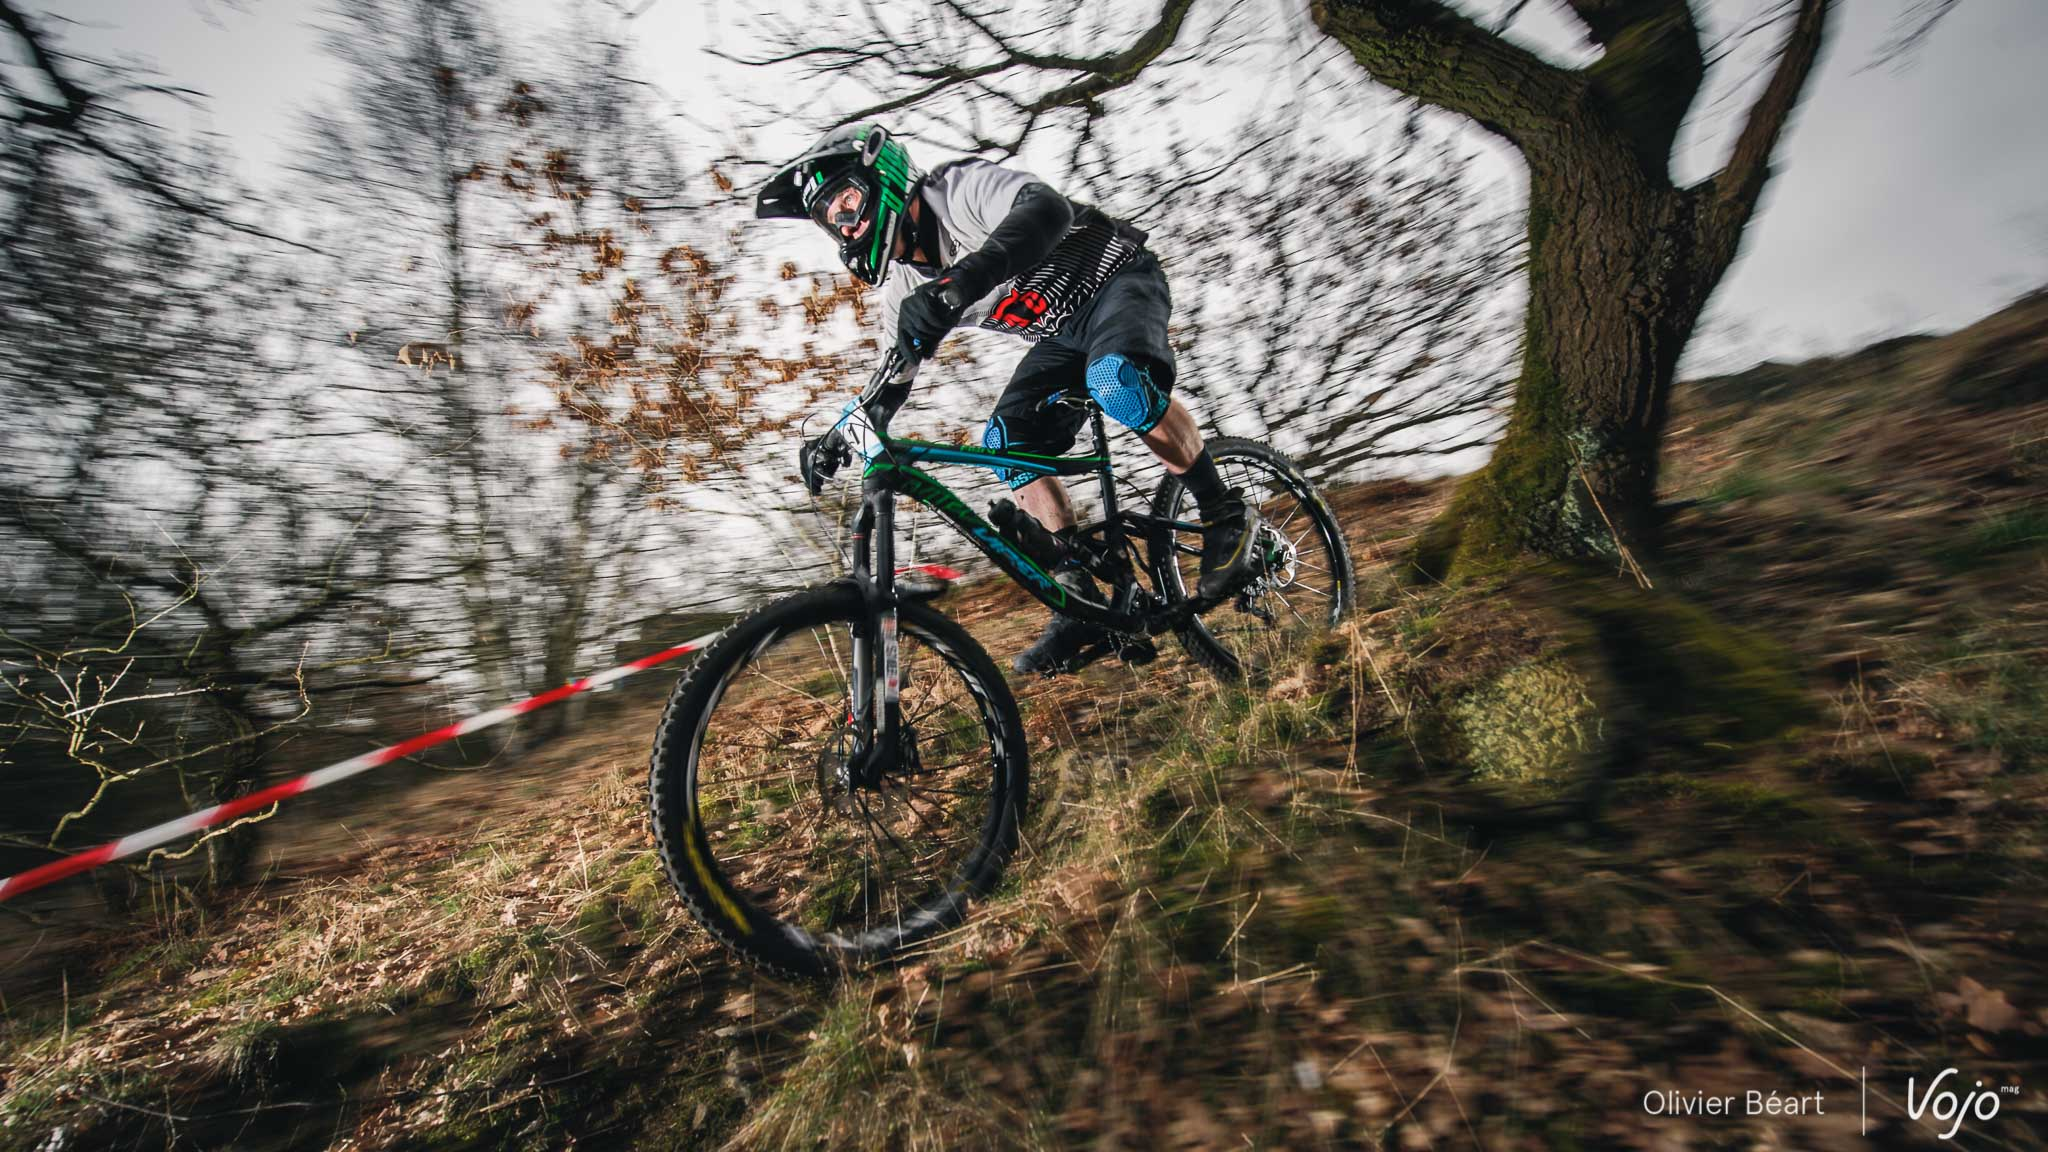 Belgian_Enduro_Cup_Chaudfontaine_2016_Copyright_OBeart_Vojomag-28